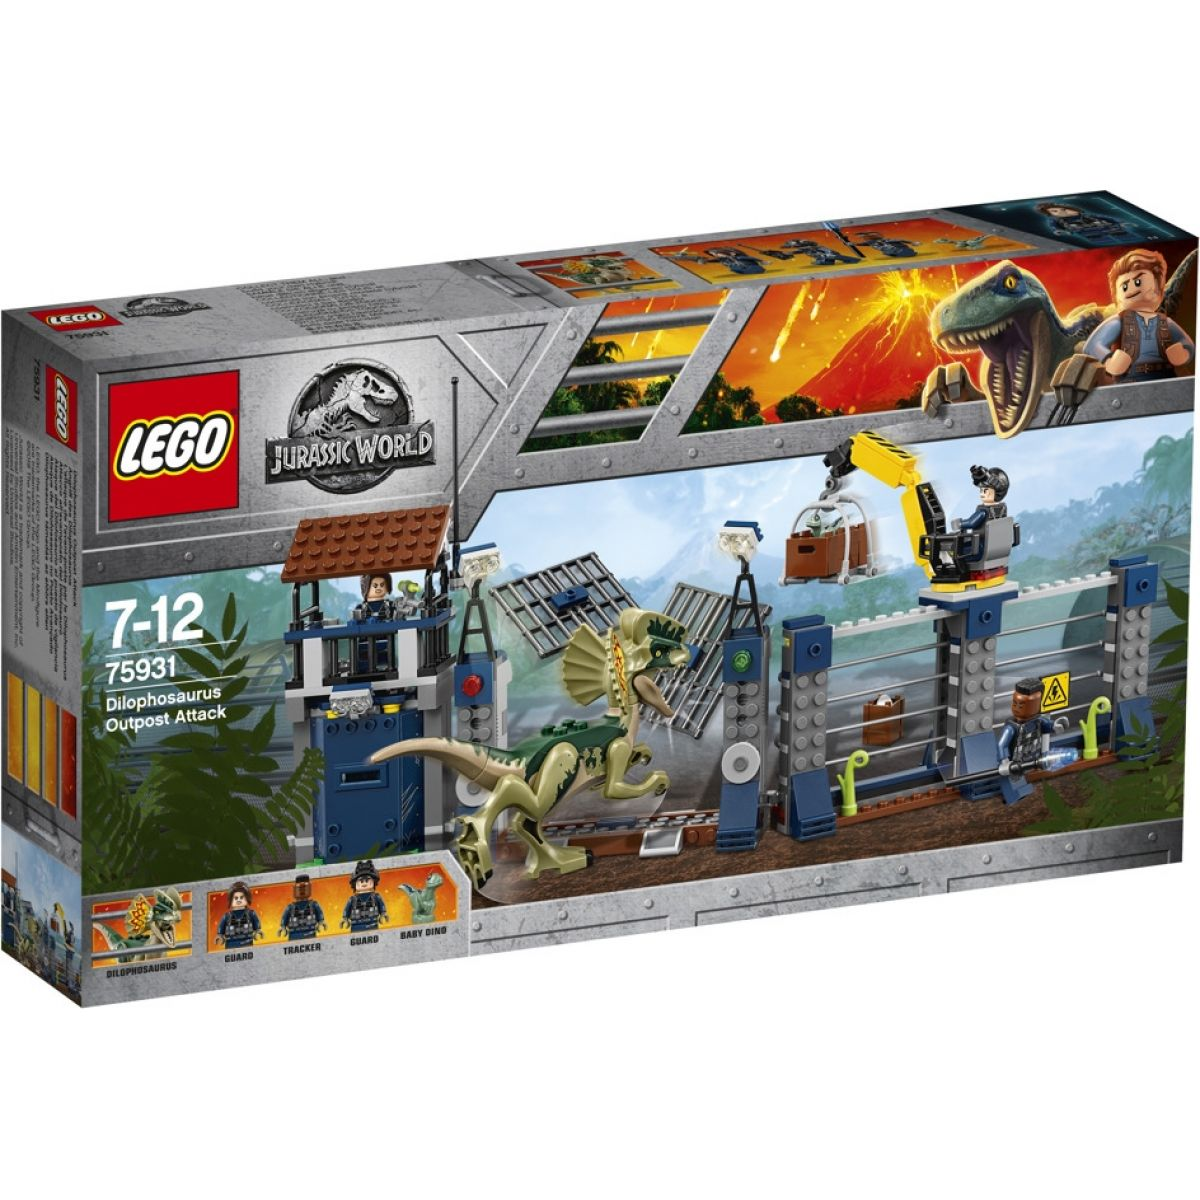 LEGO Jurassic World 75931 Dilophosaurus Outpost Attack